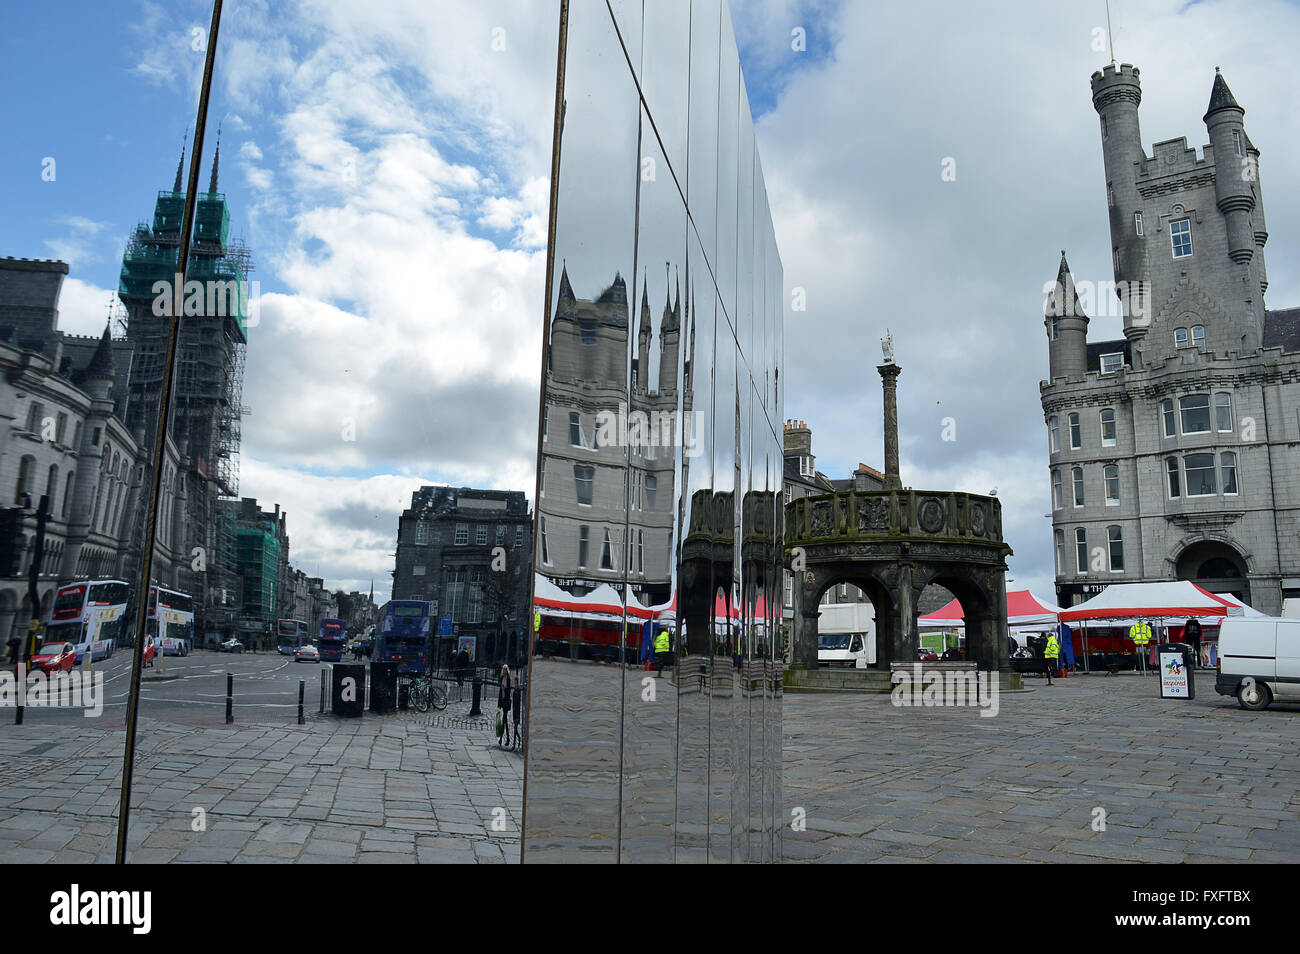 Aberdeen, Scotland, UK. 15th April, 2016. The mirrored pavilion reflects a view down Union Street from where it Stock Photo